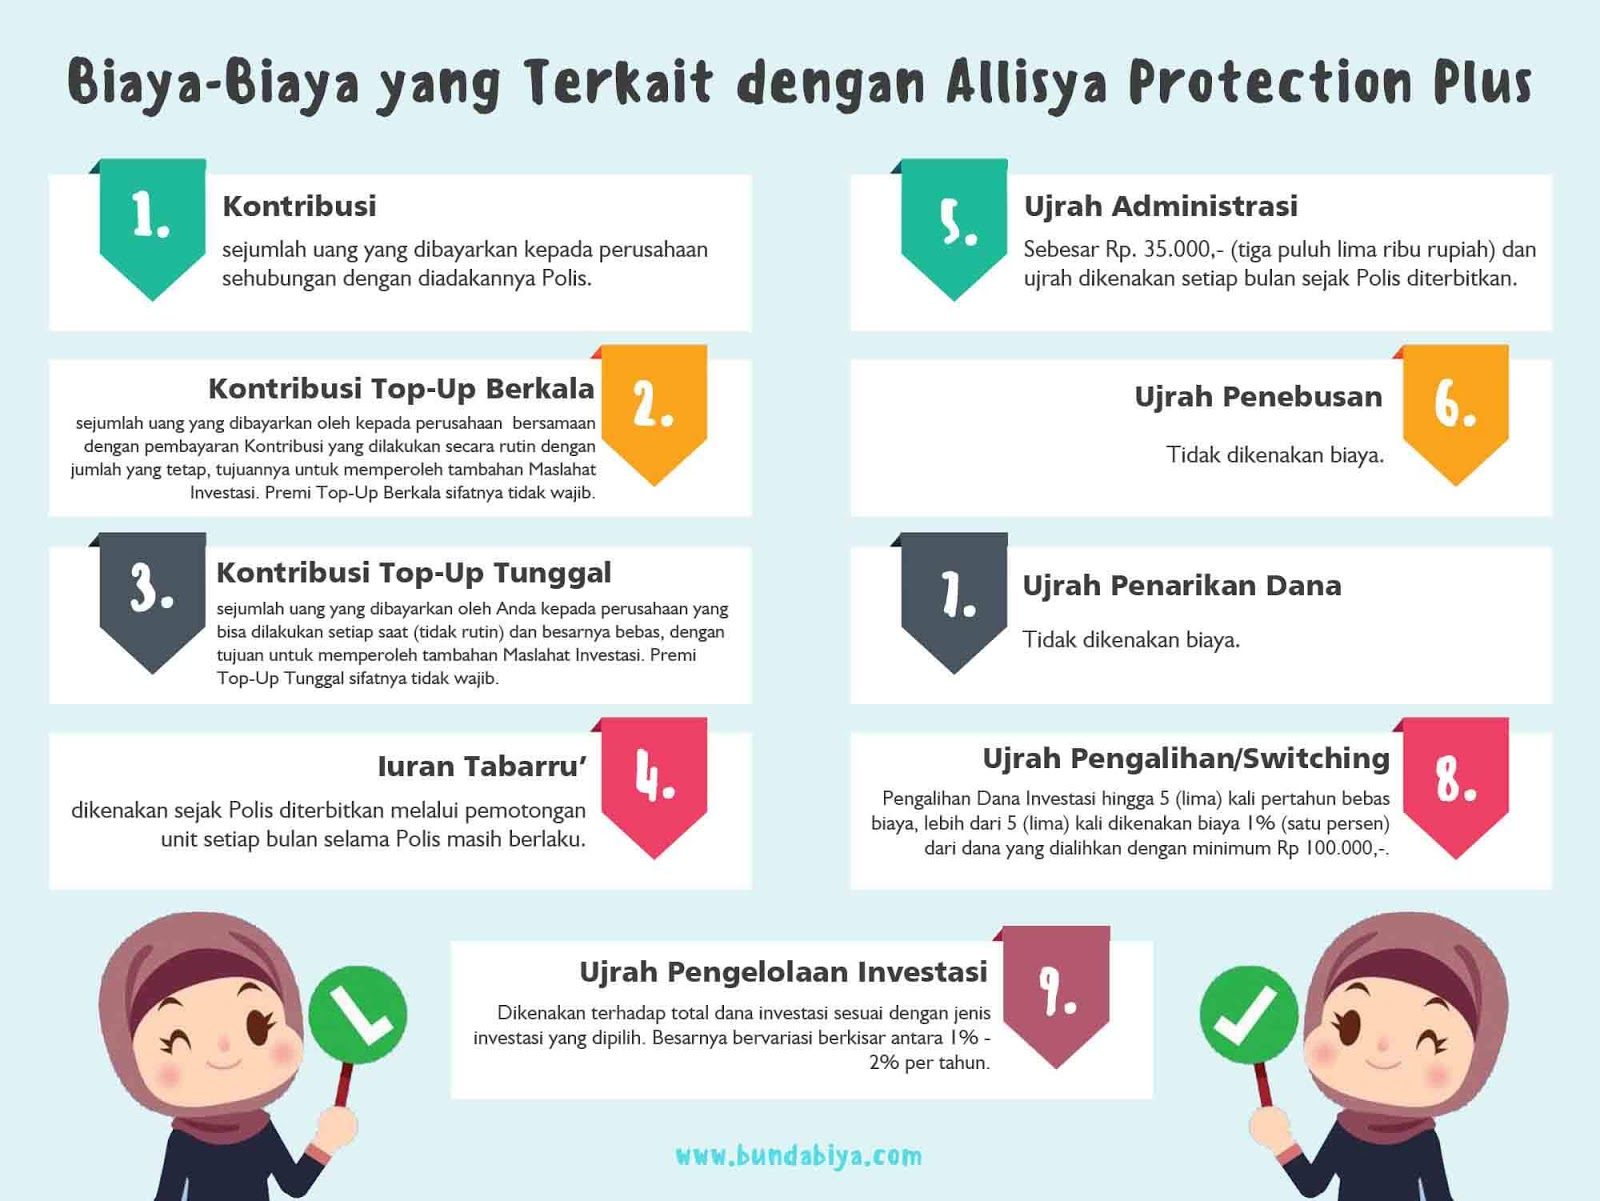 asuransi syariah, konsep asuransi syariah, cara kerja asuransi syariah, lomba blog allianz, allianz syariah, allisya protection plus, perlindungan maksimal dari allisya protection plus